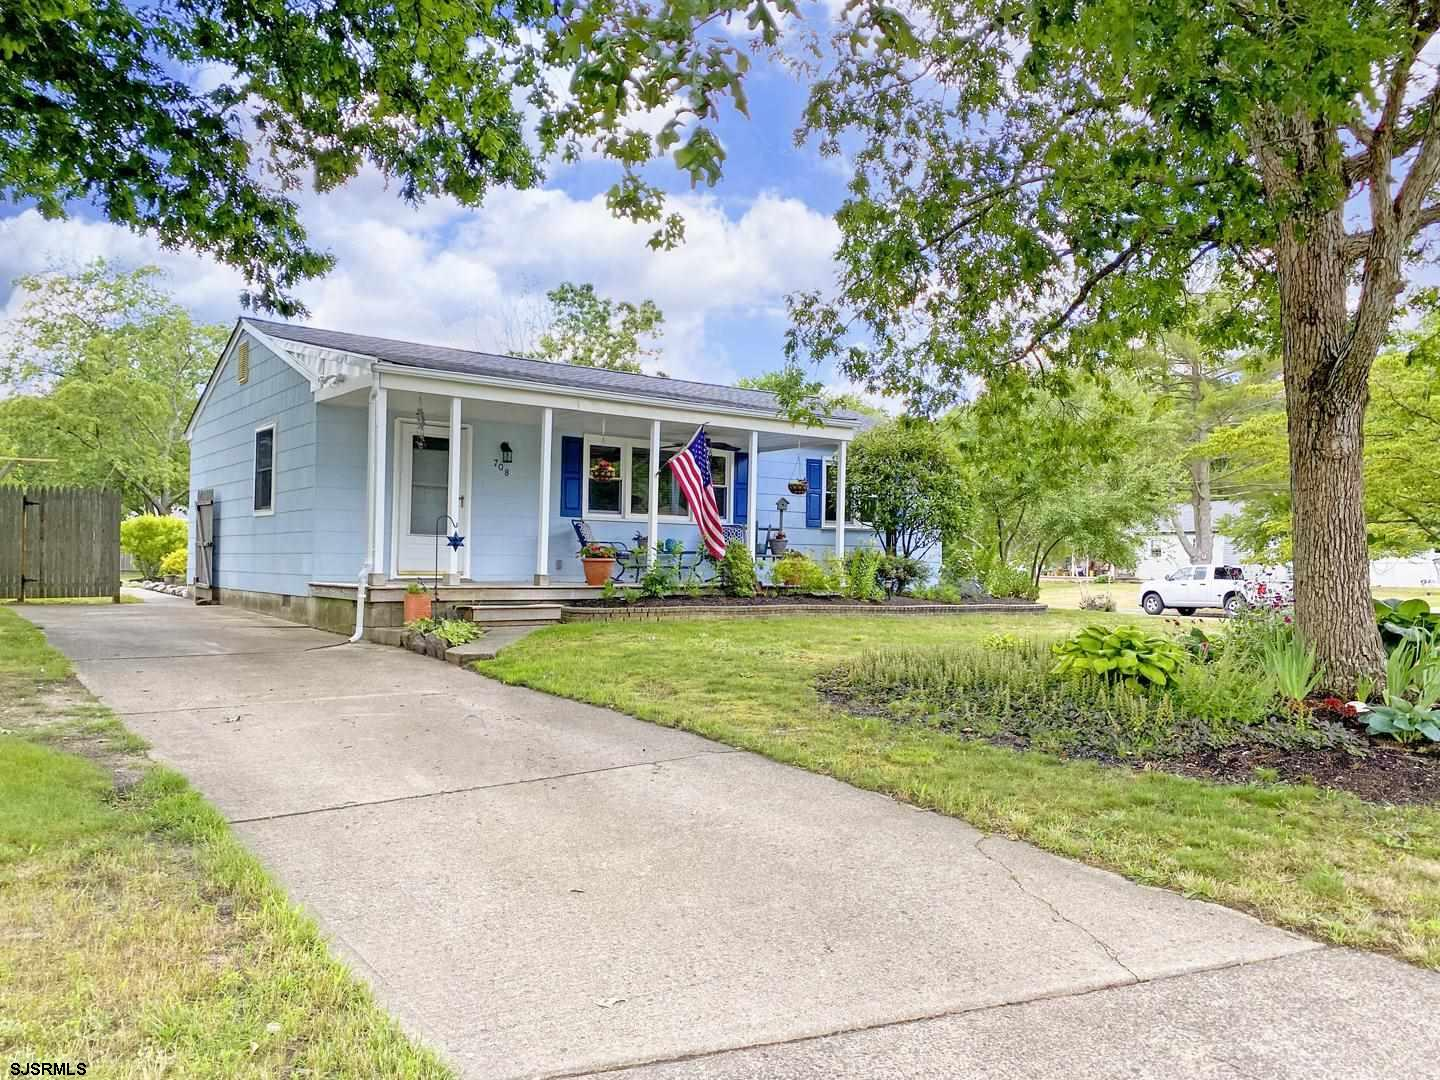 LARGE CORNER LOT RANCHER!!!  Don't Miss Your Chance to Own This Spotless 3 Bedroom 1 Bath Home in a